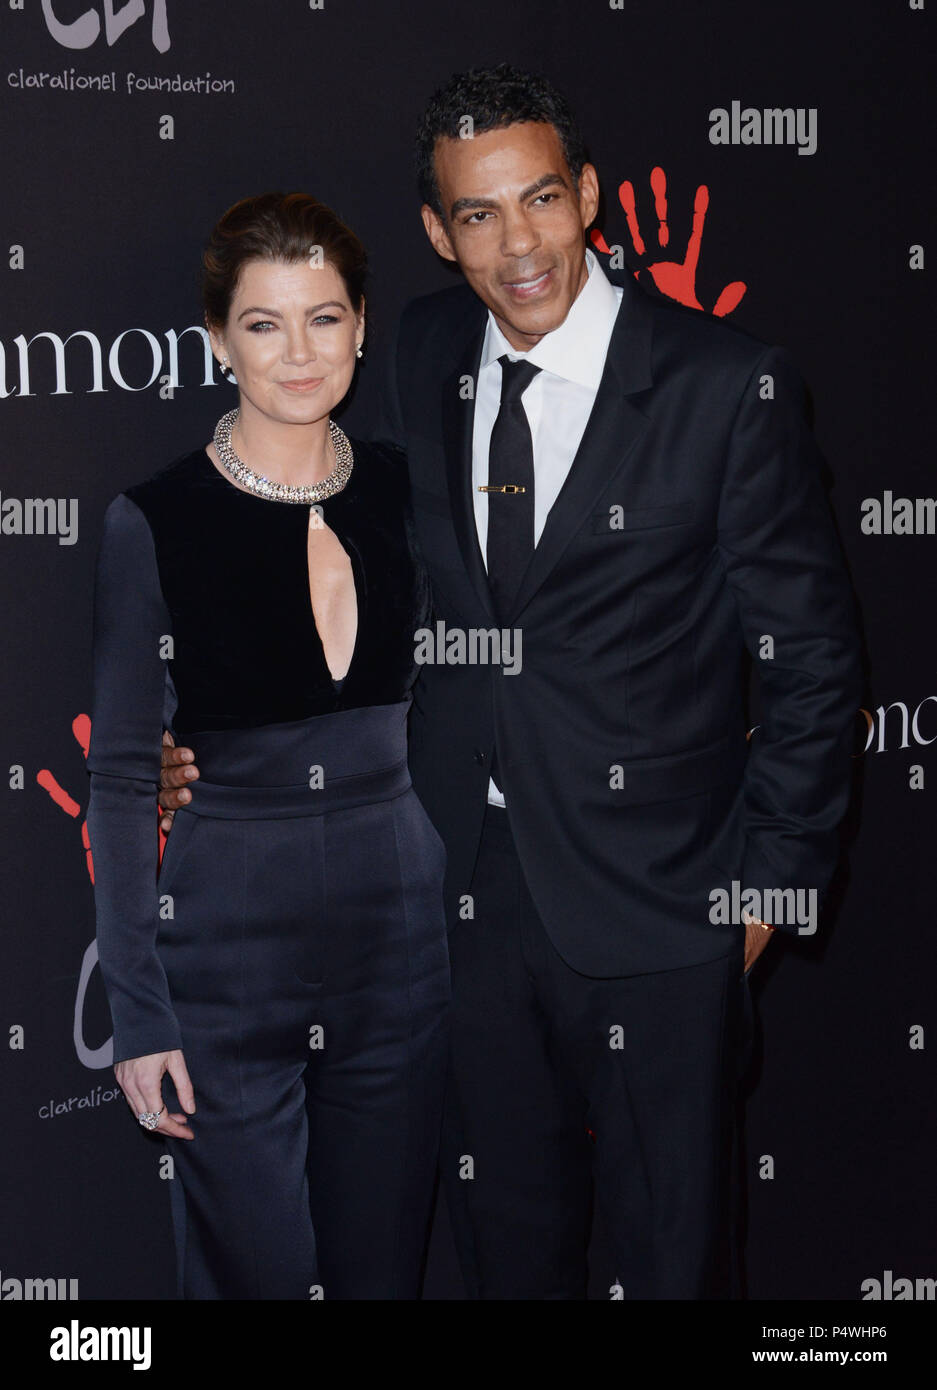 Ellen Pompeo Husband Chris Ivery High Resolution Stock Photography And Images Alamy